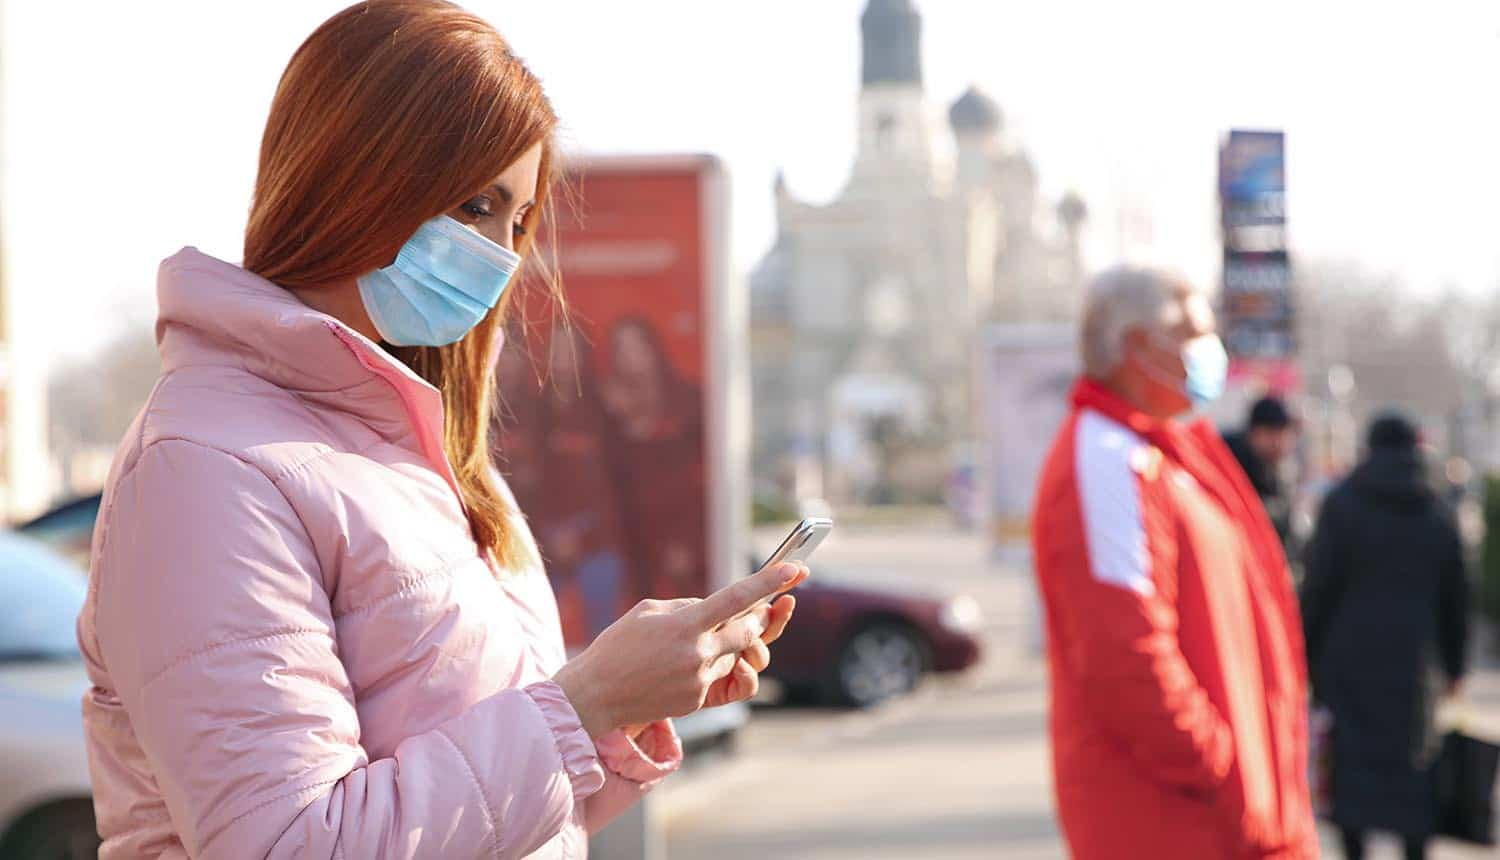 Woman in mask using mobile showing the unreported national security risk of COVID-19 contact tracing apps